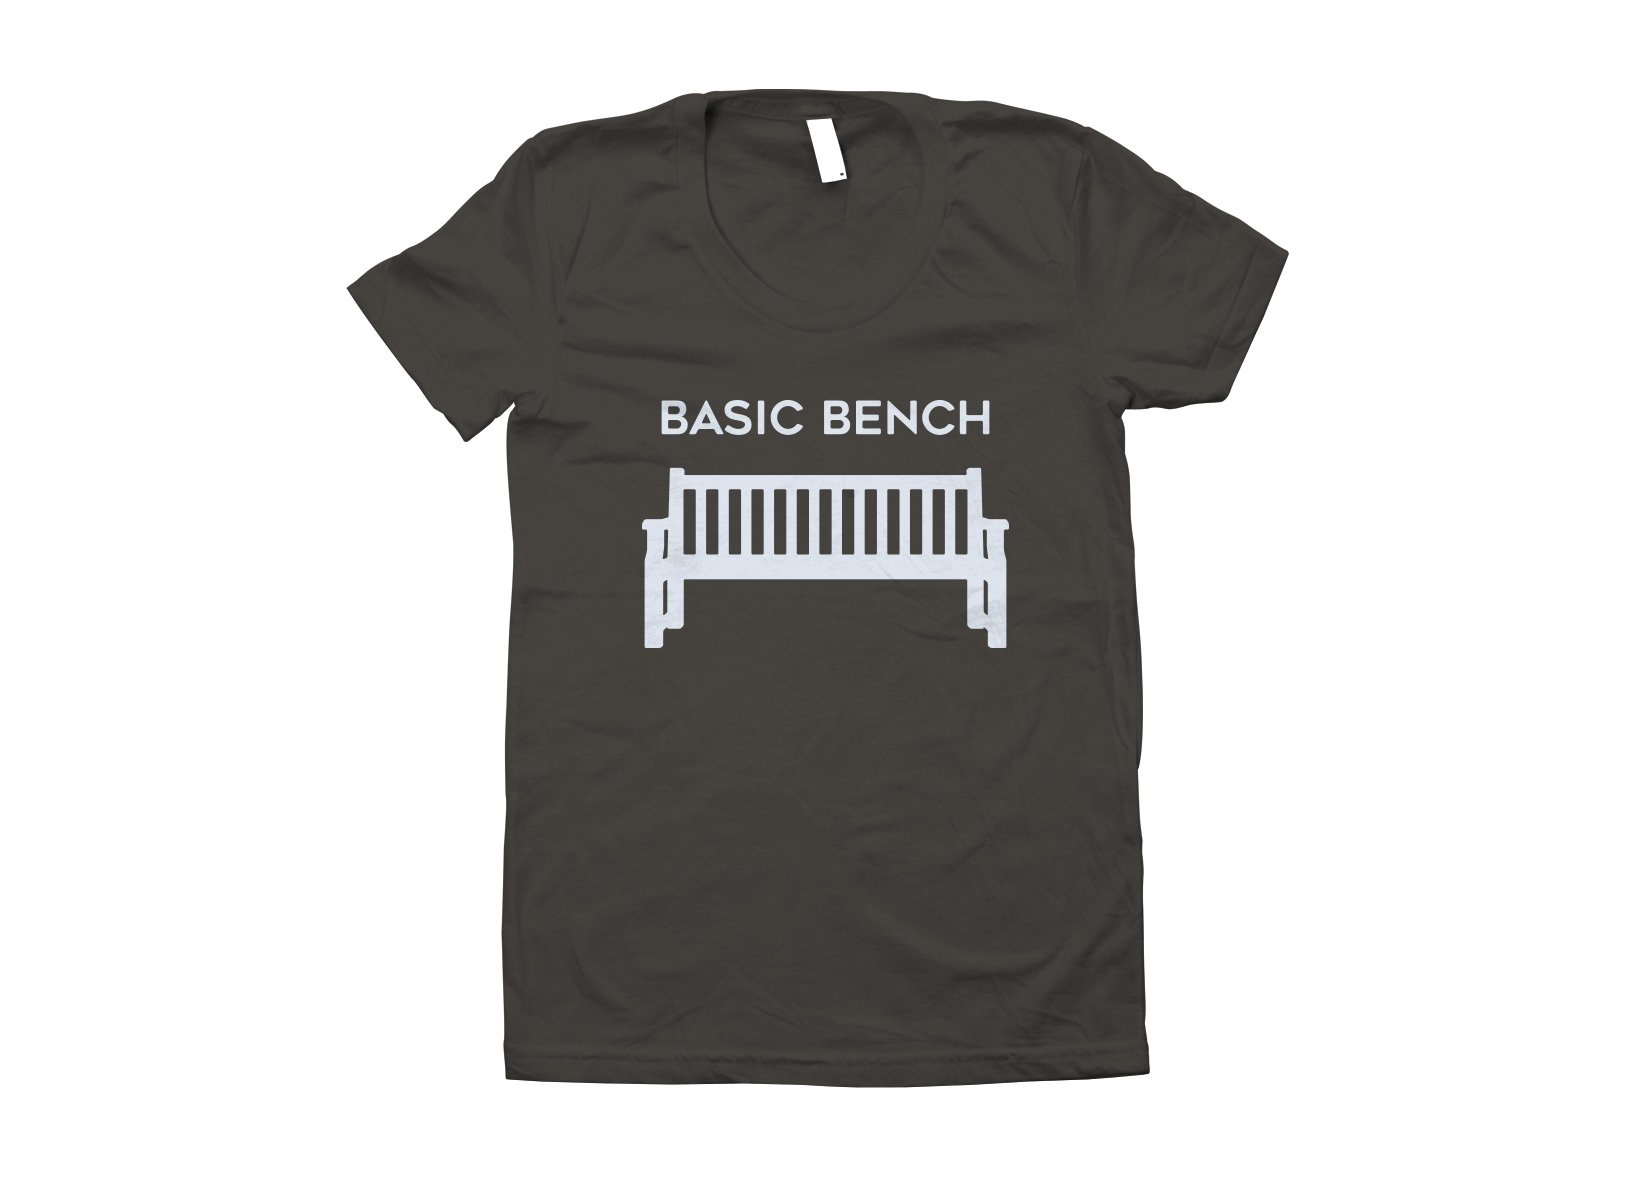 Basic Bench on Juniors T-Shirt